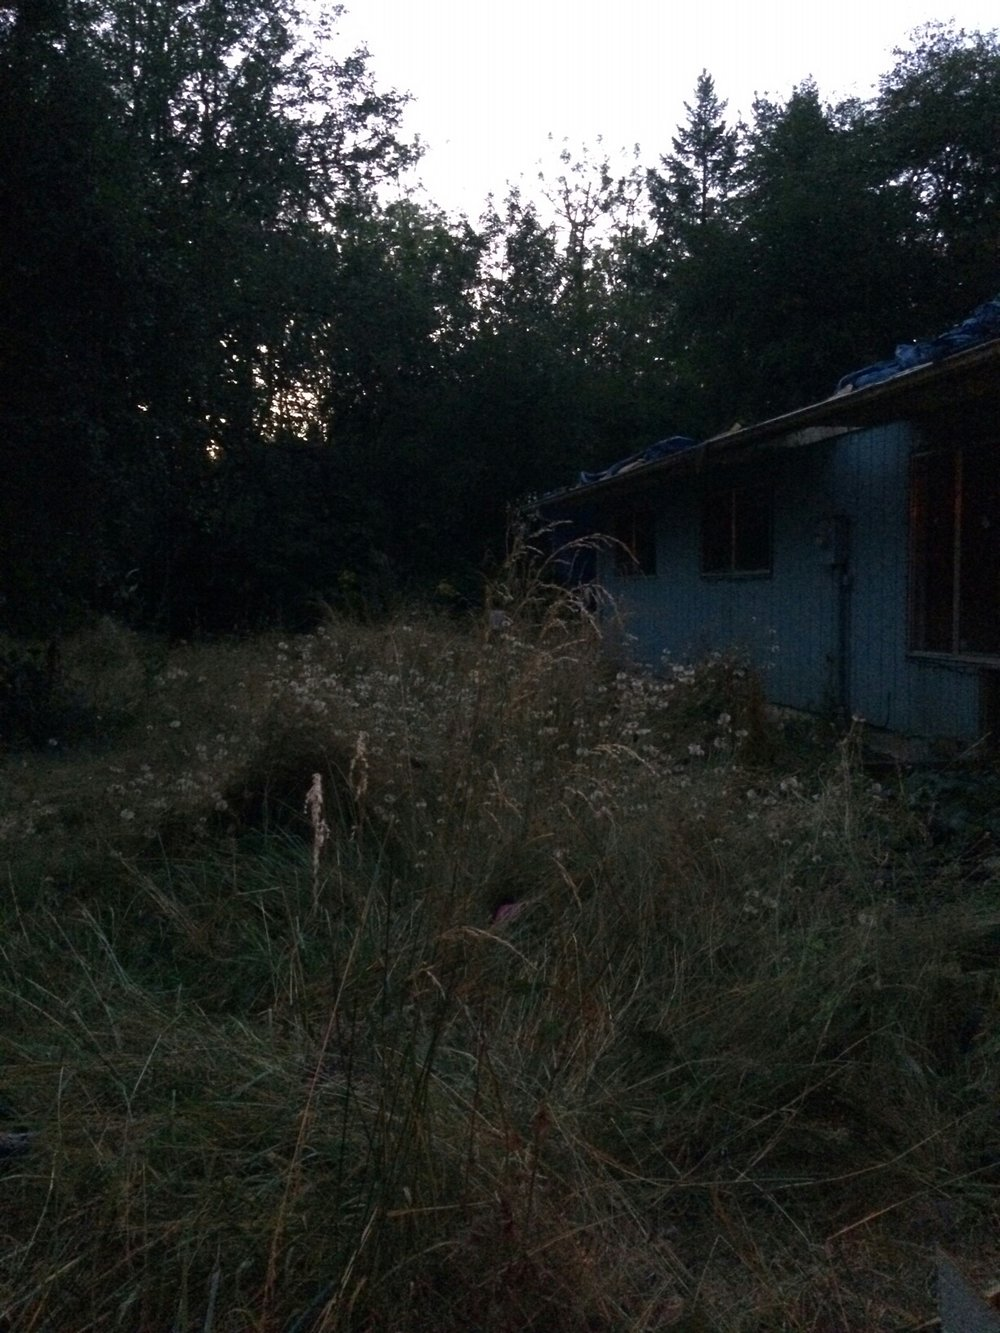 the overgrown front yard in not-quite-dawn light